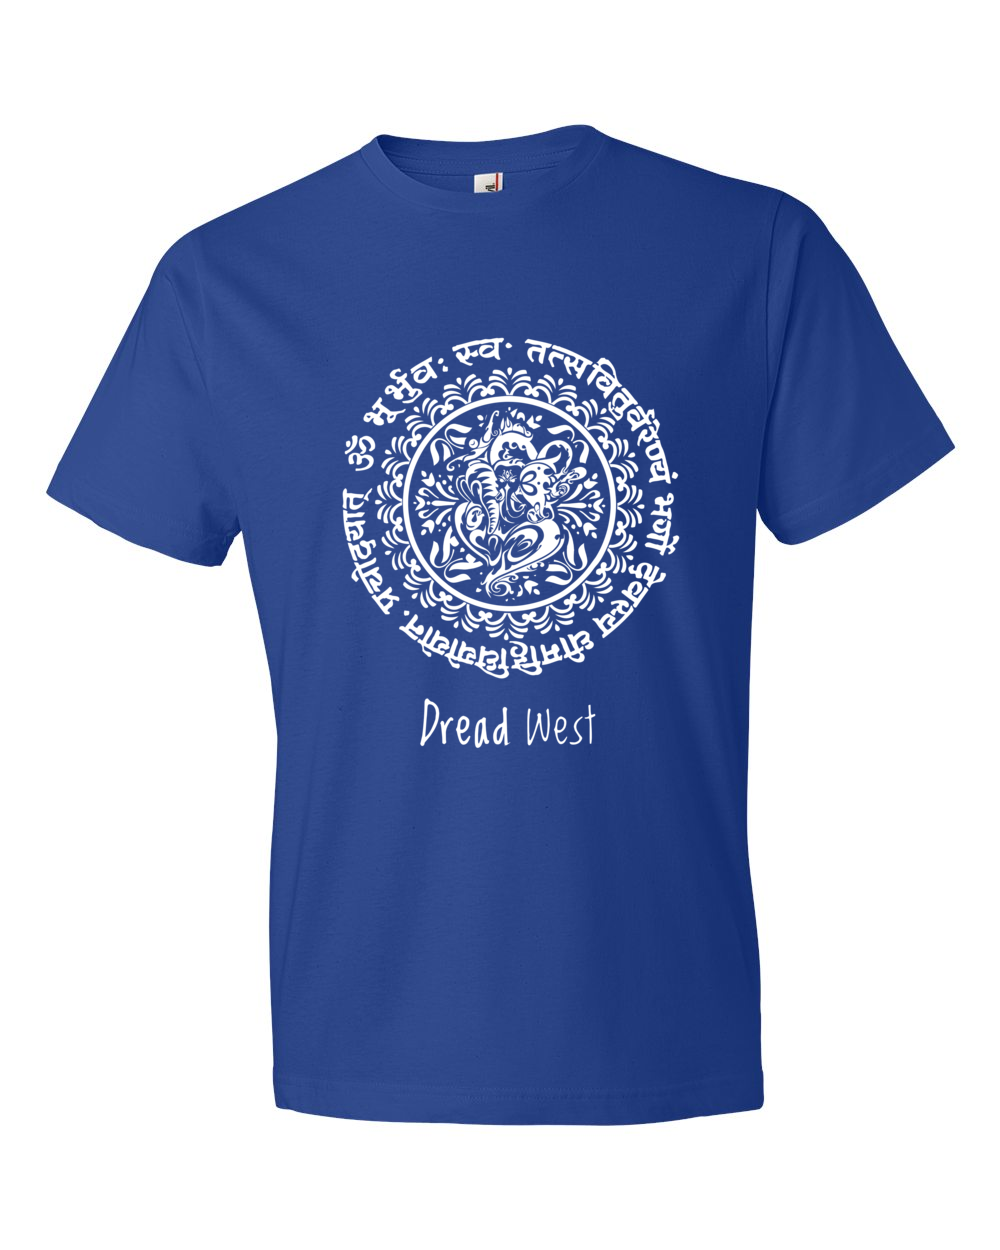 DreadWest Mantra - men's short sleeve t-shirt